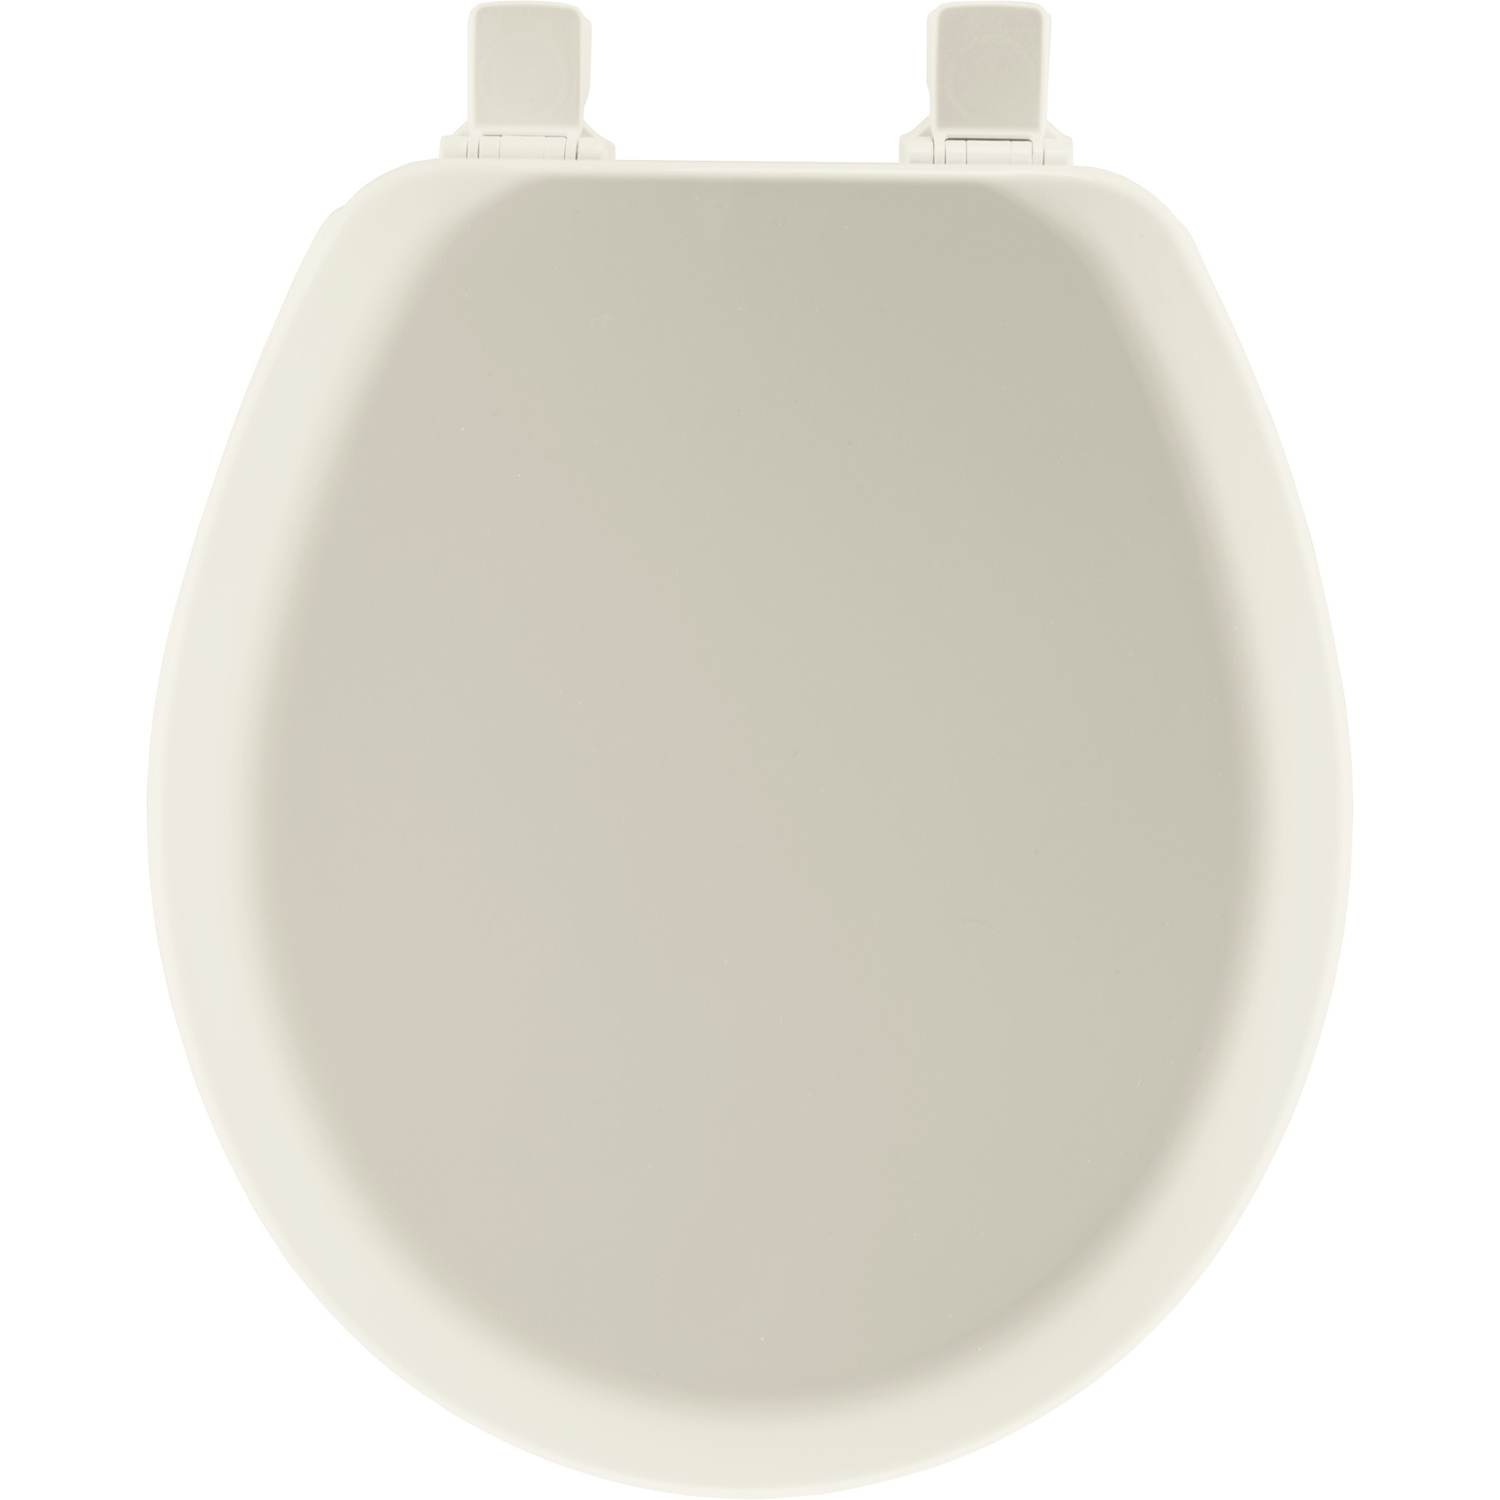 Mayfair  Never Loosens  Round  Biscuit  Molded Wood  Toilet Seat